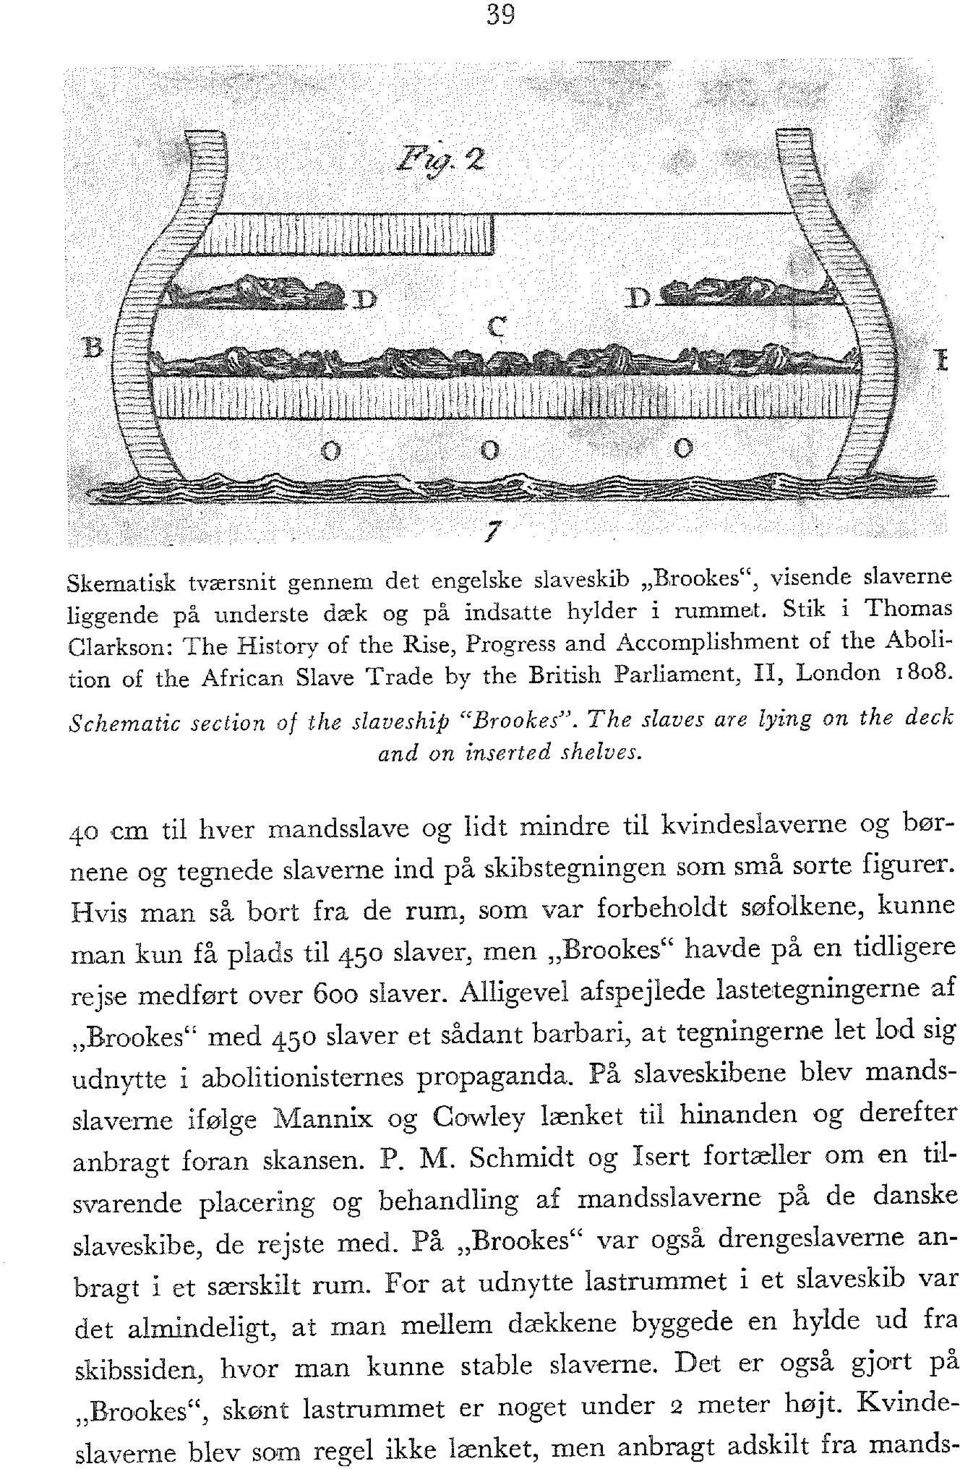 "Schematic section of the slaveship ""Brookes"". The slaves are lying on the deck and on inserted shelves."